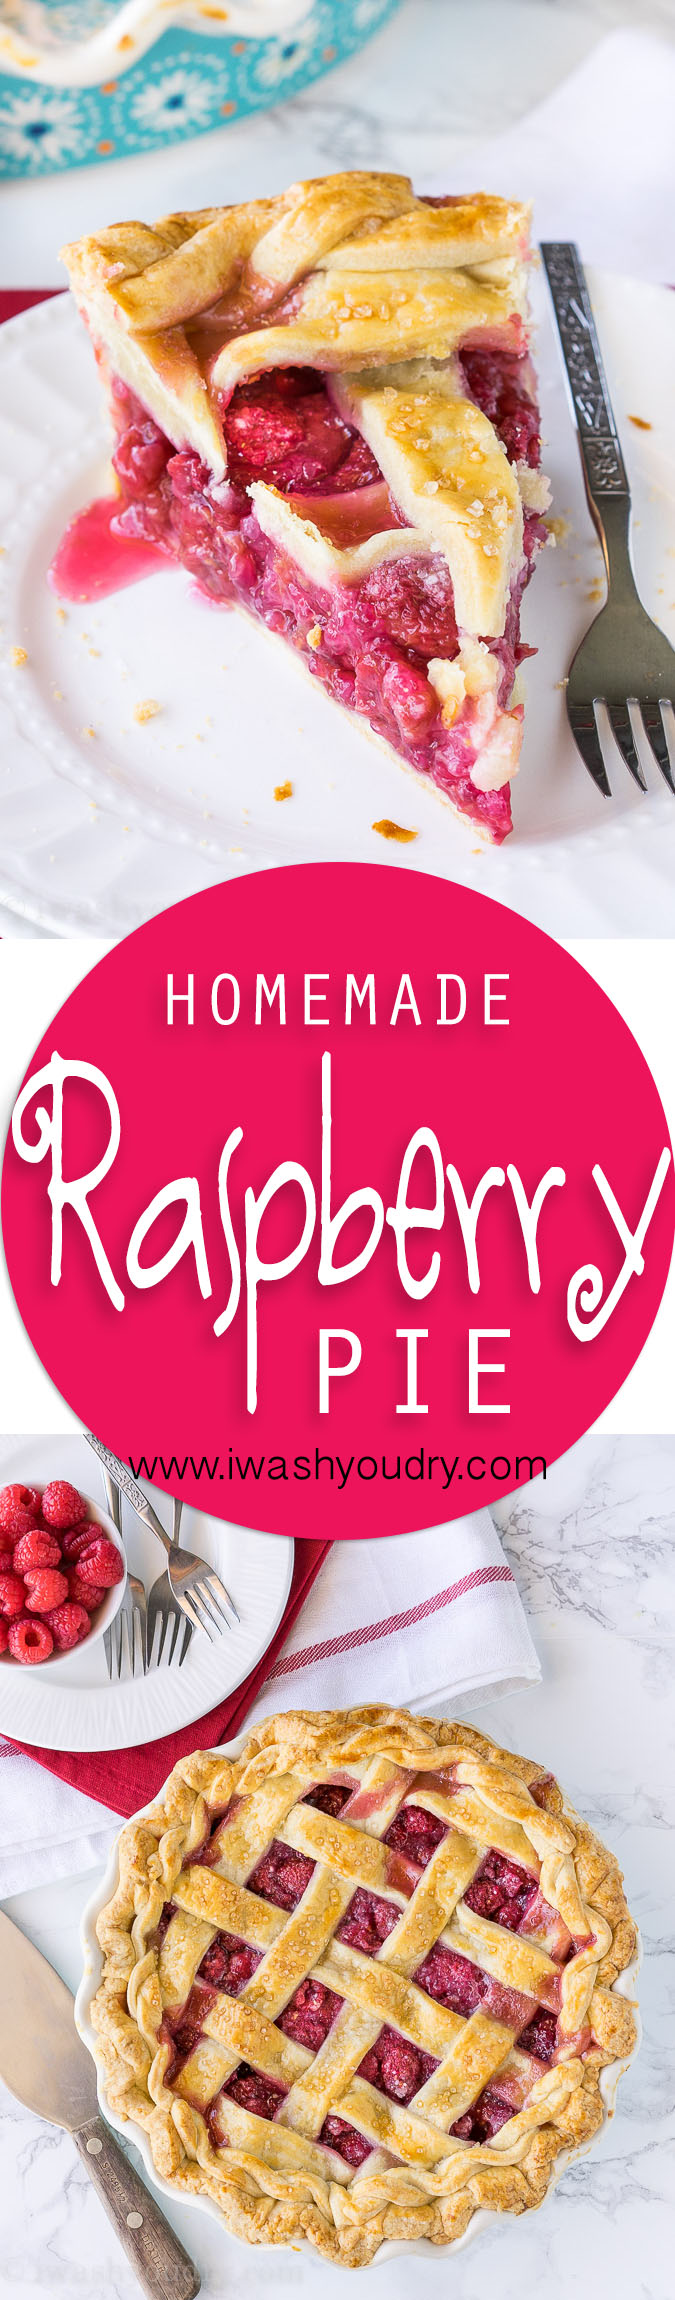 This homemade Raspberry Pie recipe is perfection! The filling is sweet and stays together, doesn't fall apart!